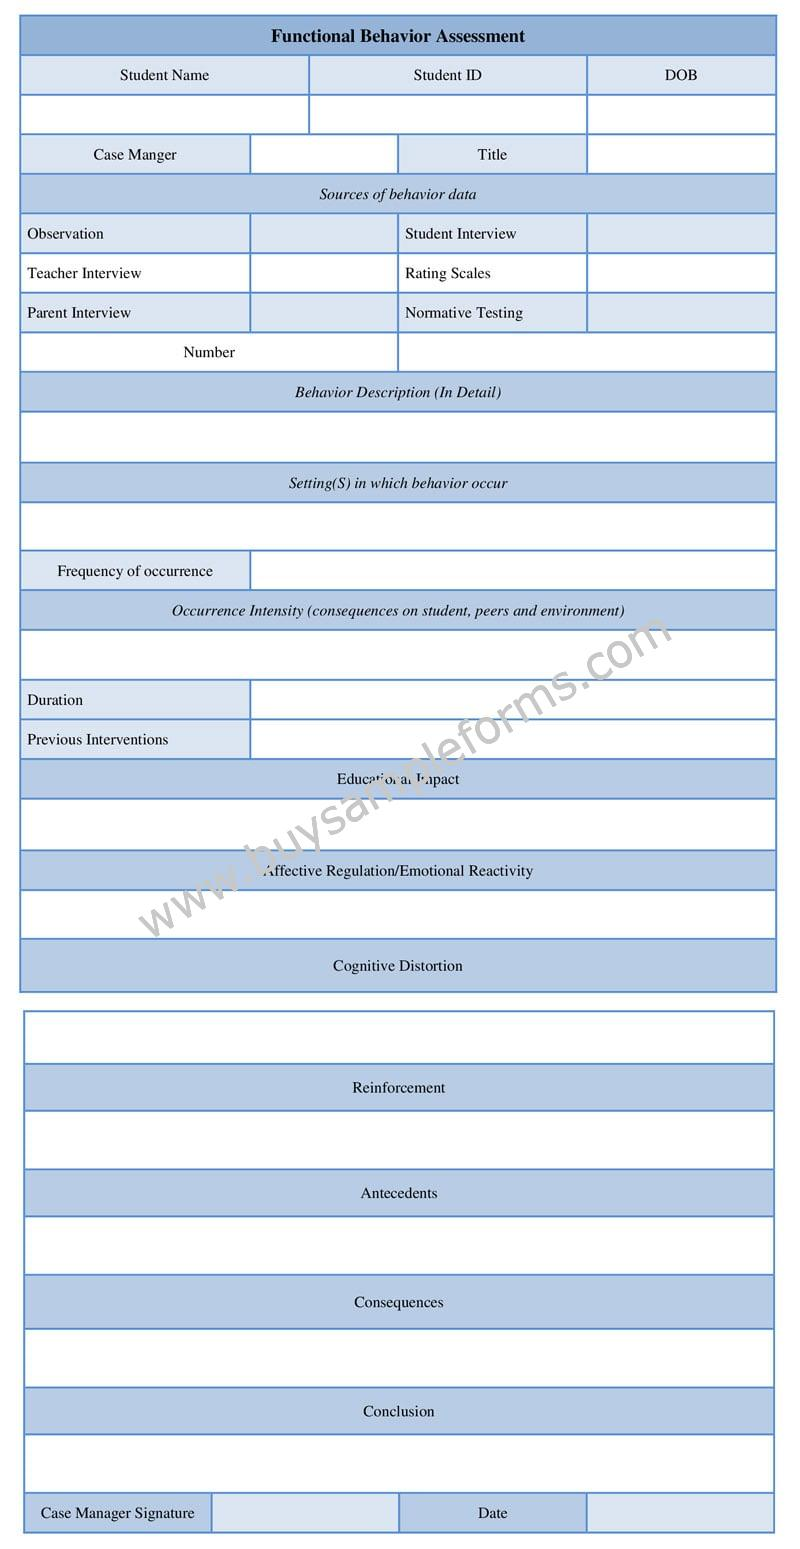 Functional Behavior Assessment Form Example, FBA Word Template